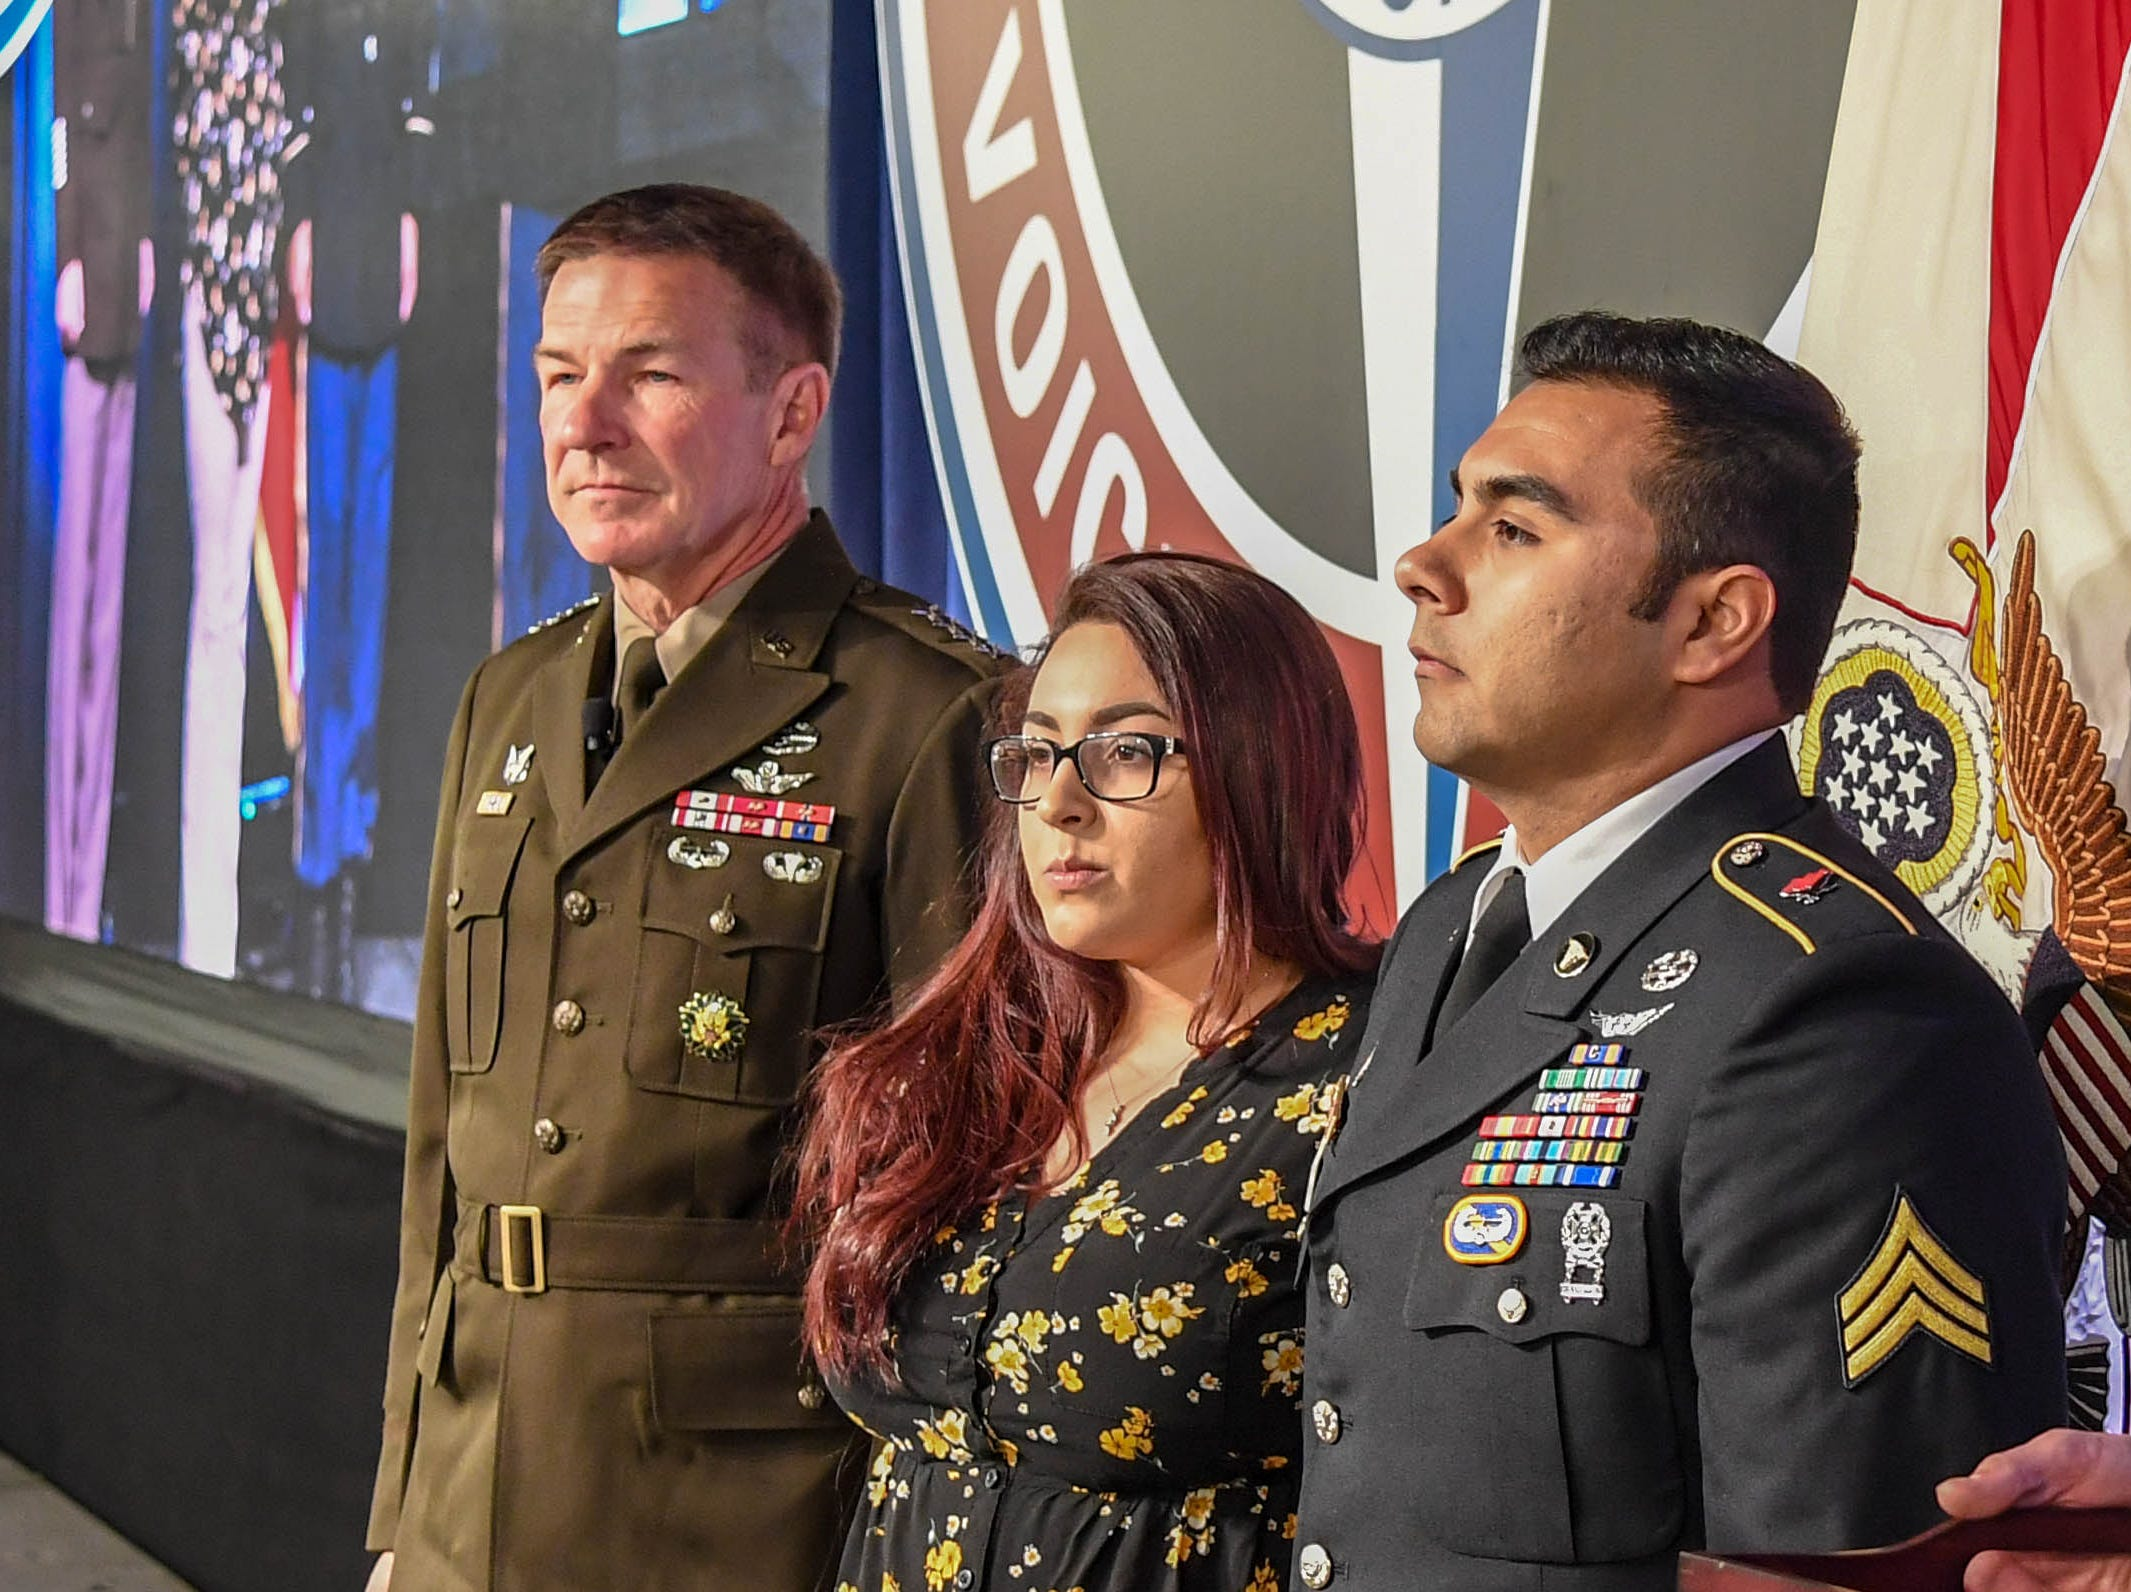 Sgt. Armando Yanez, 101st Combat Aviation Brigade, being awarded the Silver Star on April 16, 2019, for heroism in combat during a medevac mission last year in Afghanistan.